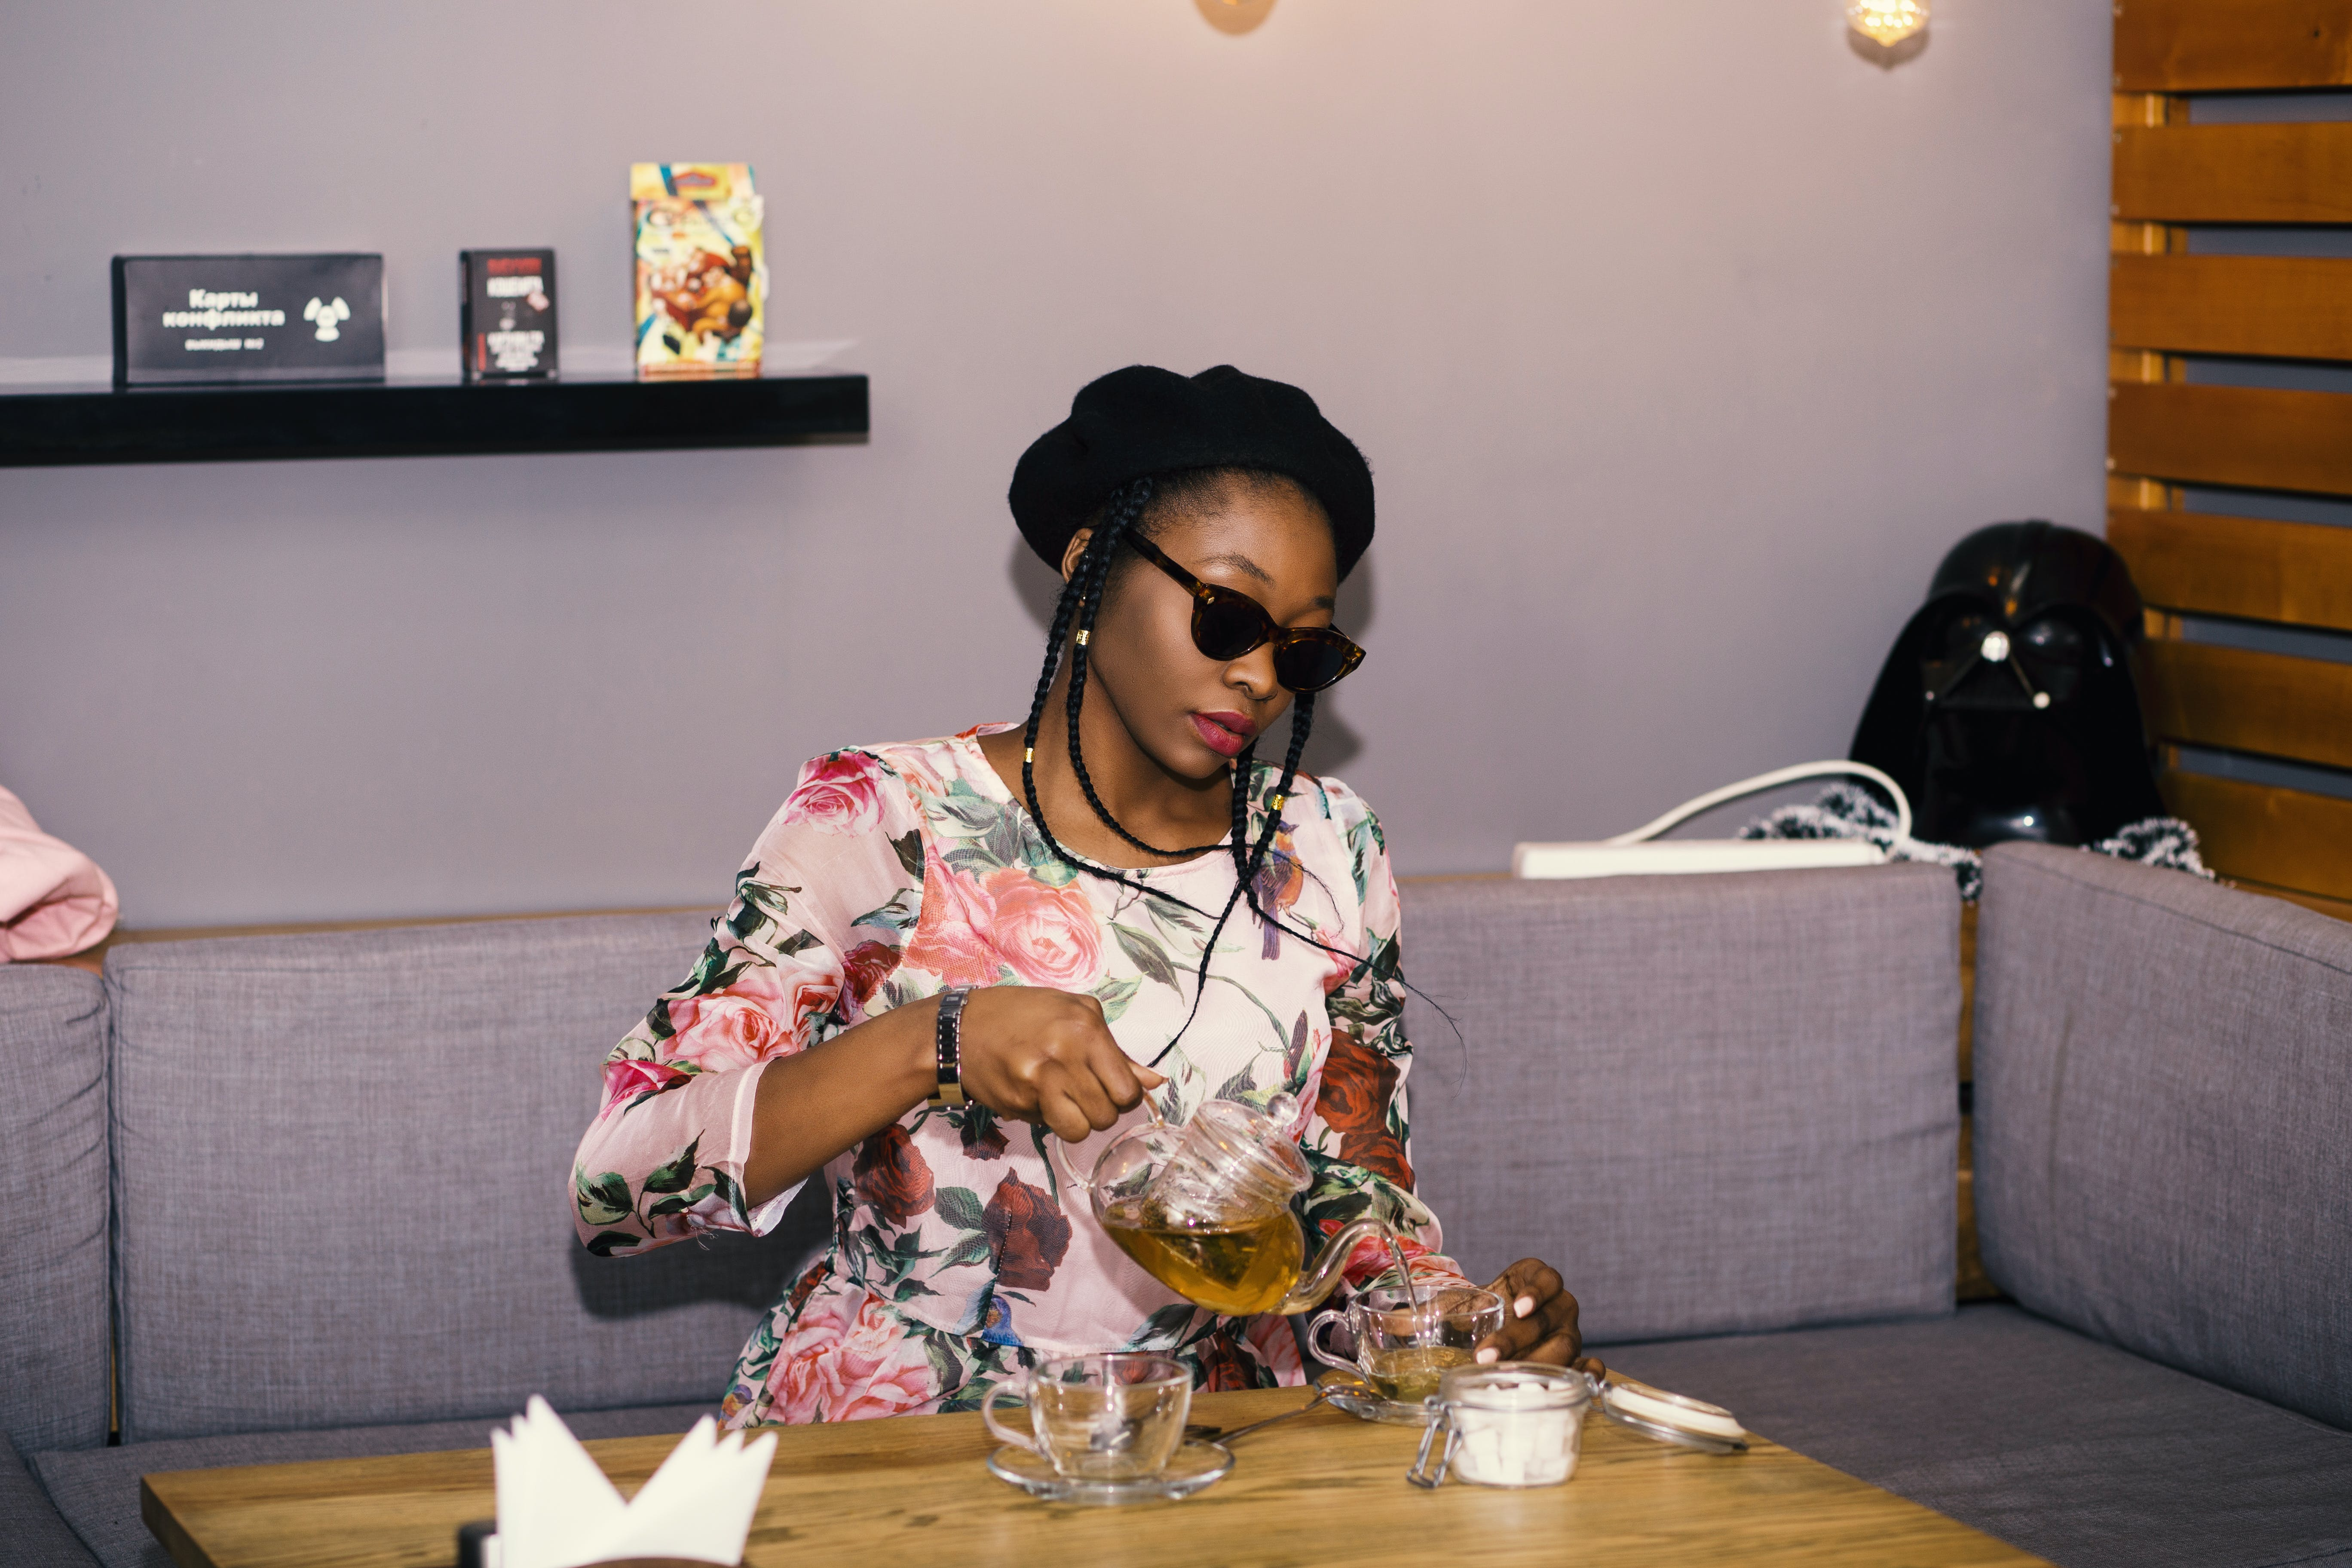 Woman Pouring Tea on Cup